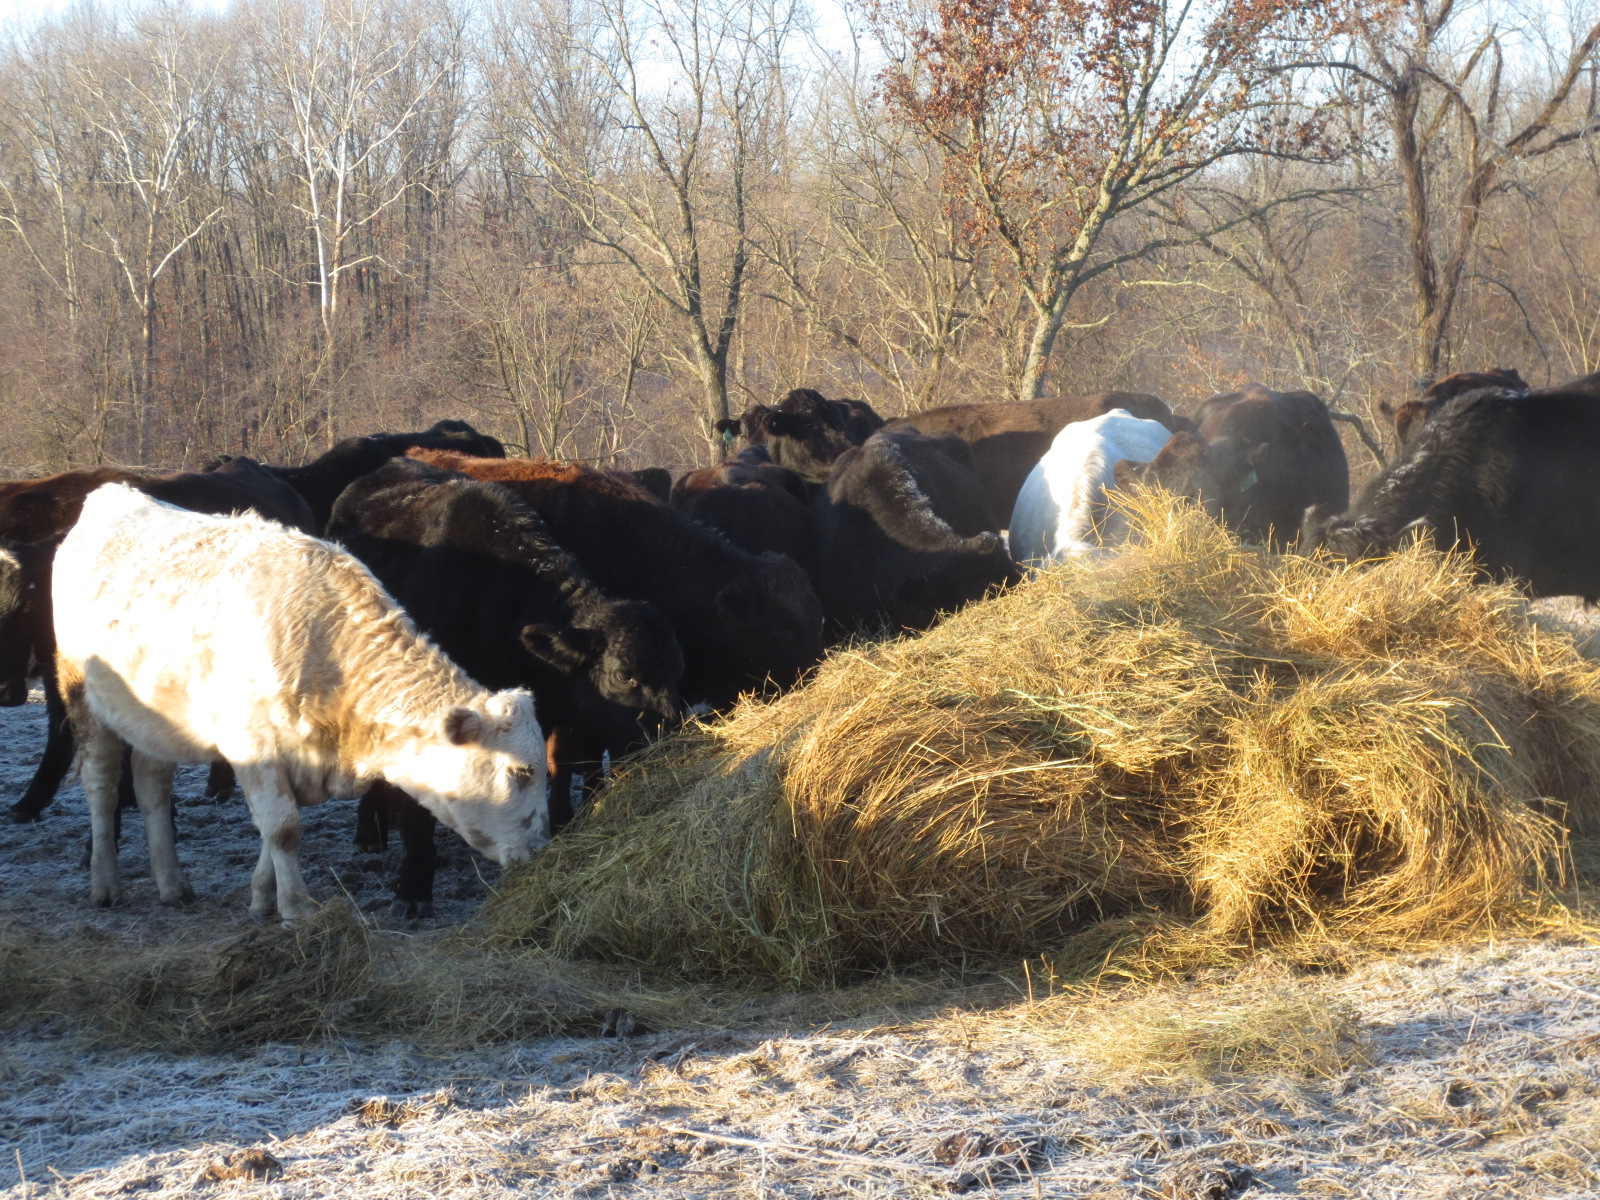 what do cattle eat in winter. making hay to feed cattle in winter.